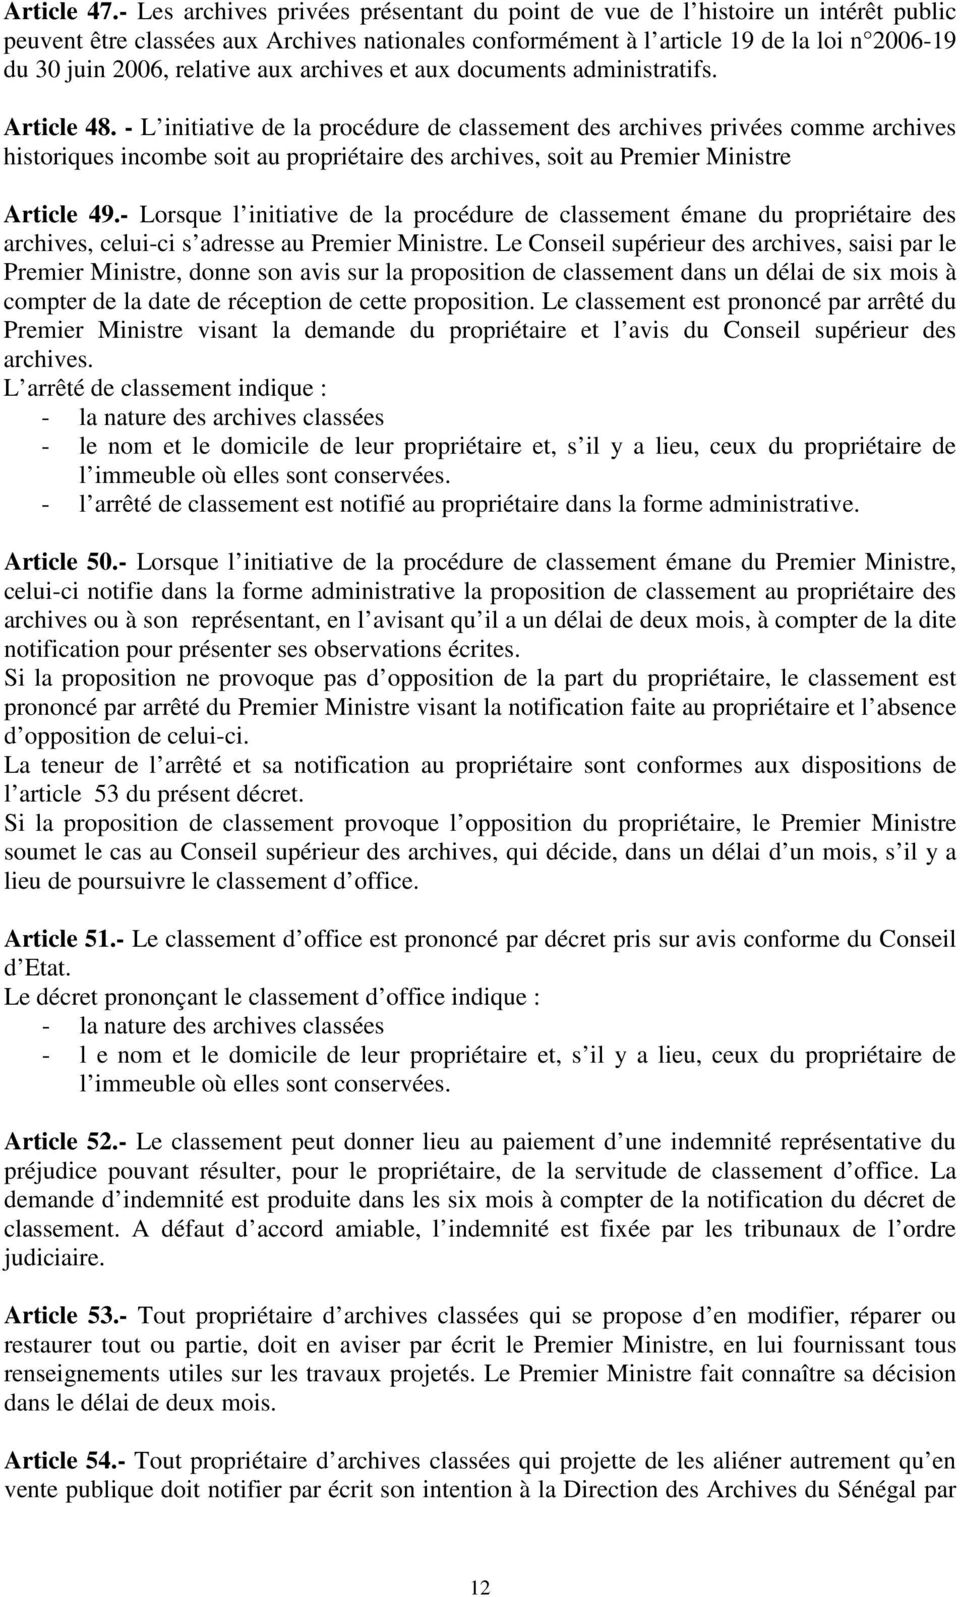 relative aux archives et aux documents administratifs. Article 48.